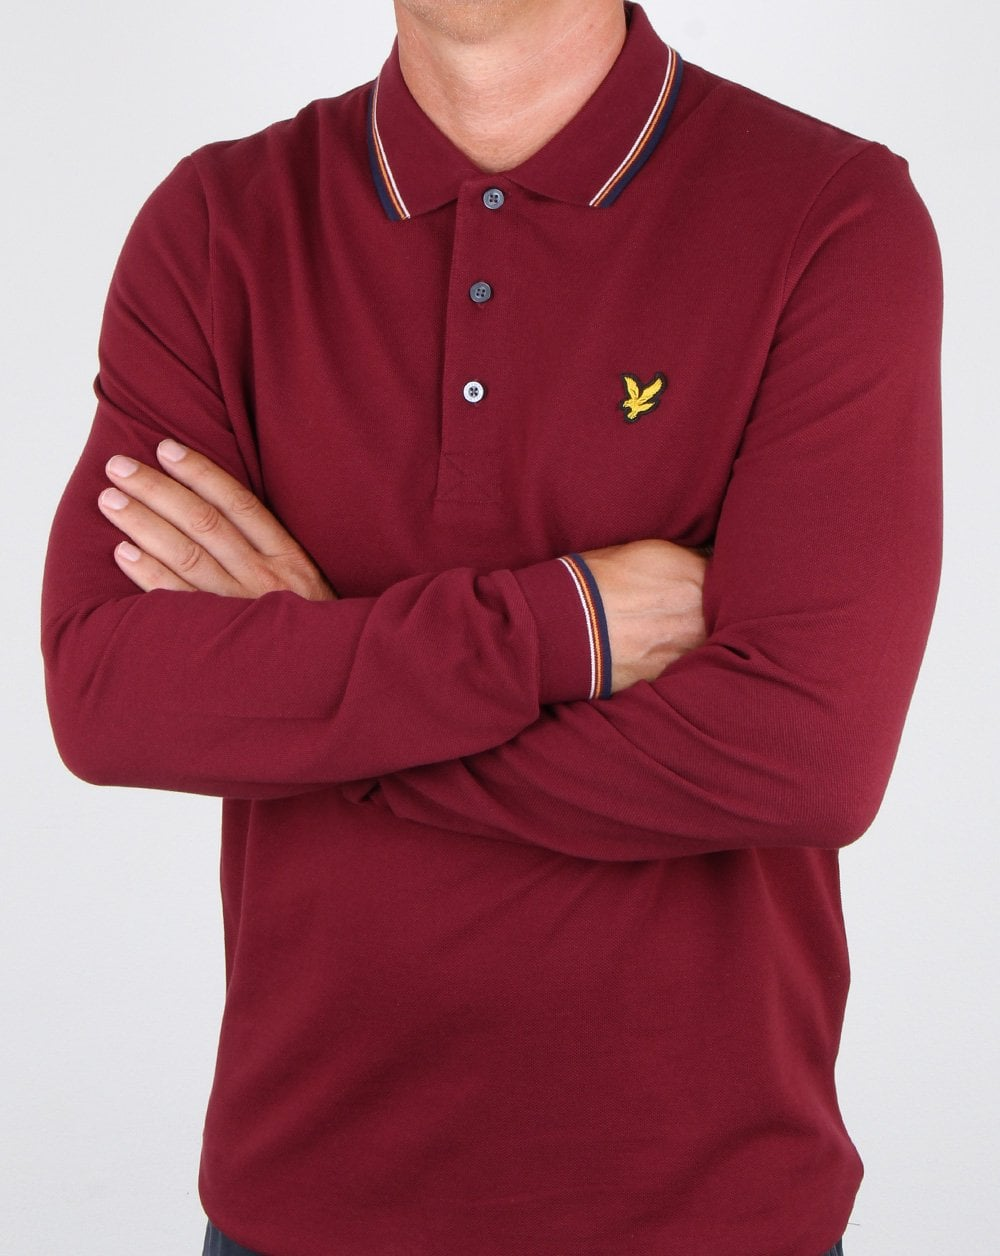 acd68f7f2 Lyle and Scott Lyle And Scott Long Sleeve Tipped Polo Shirt Claret Jug